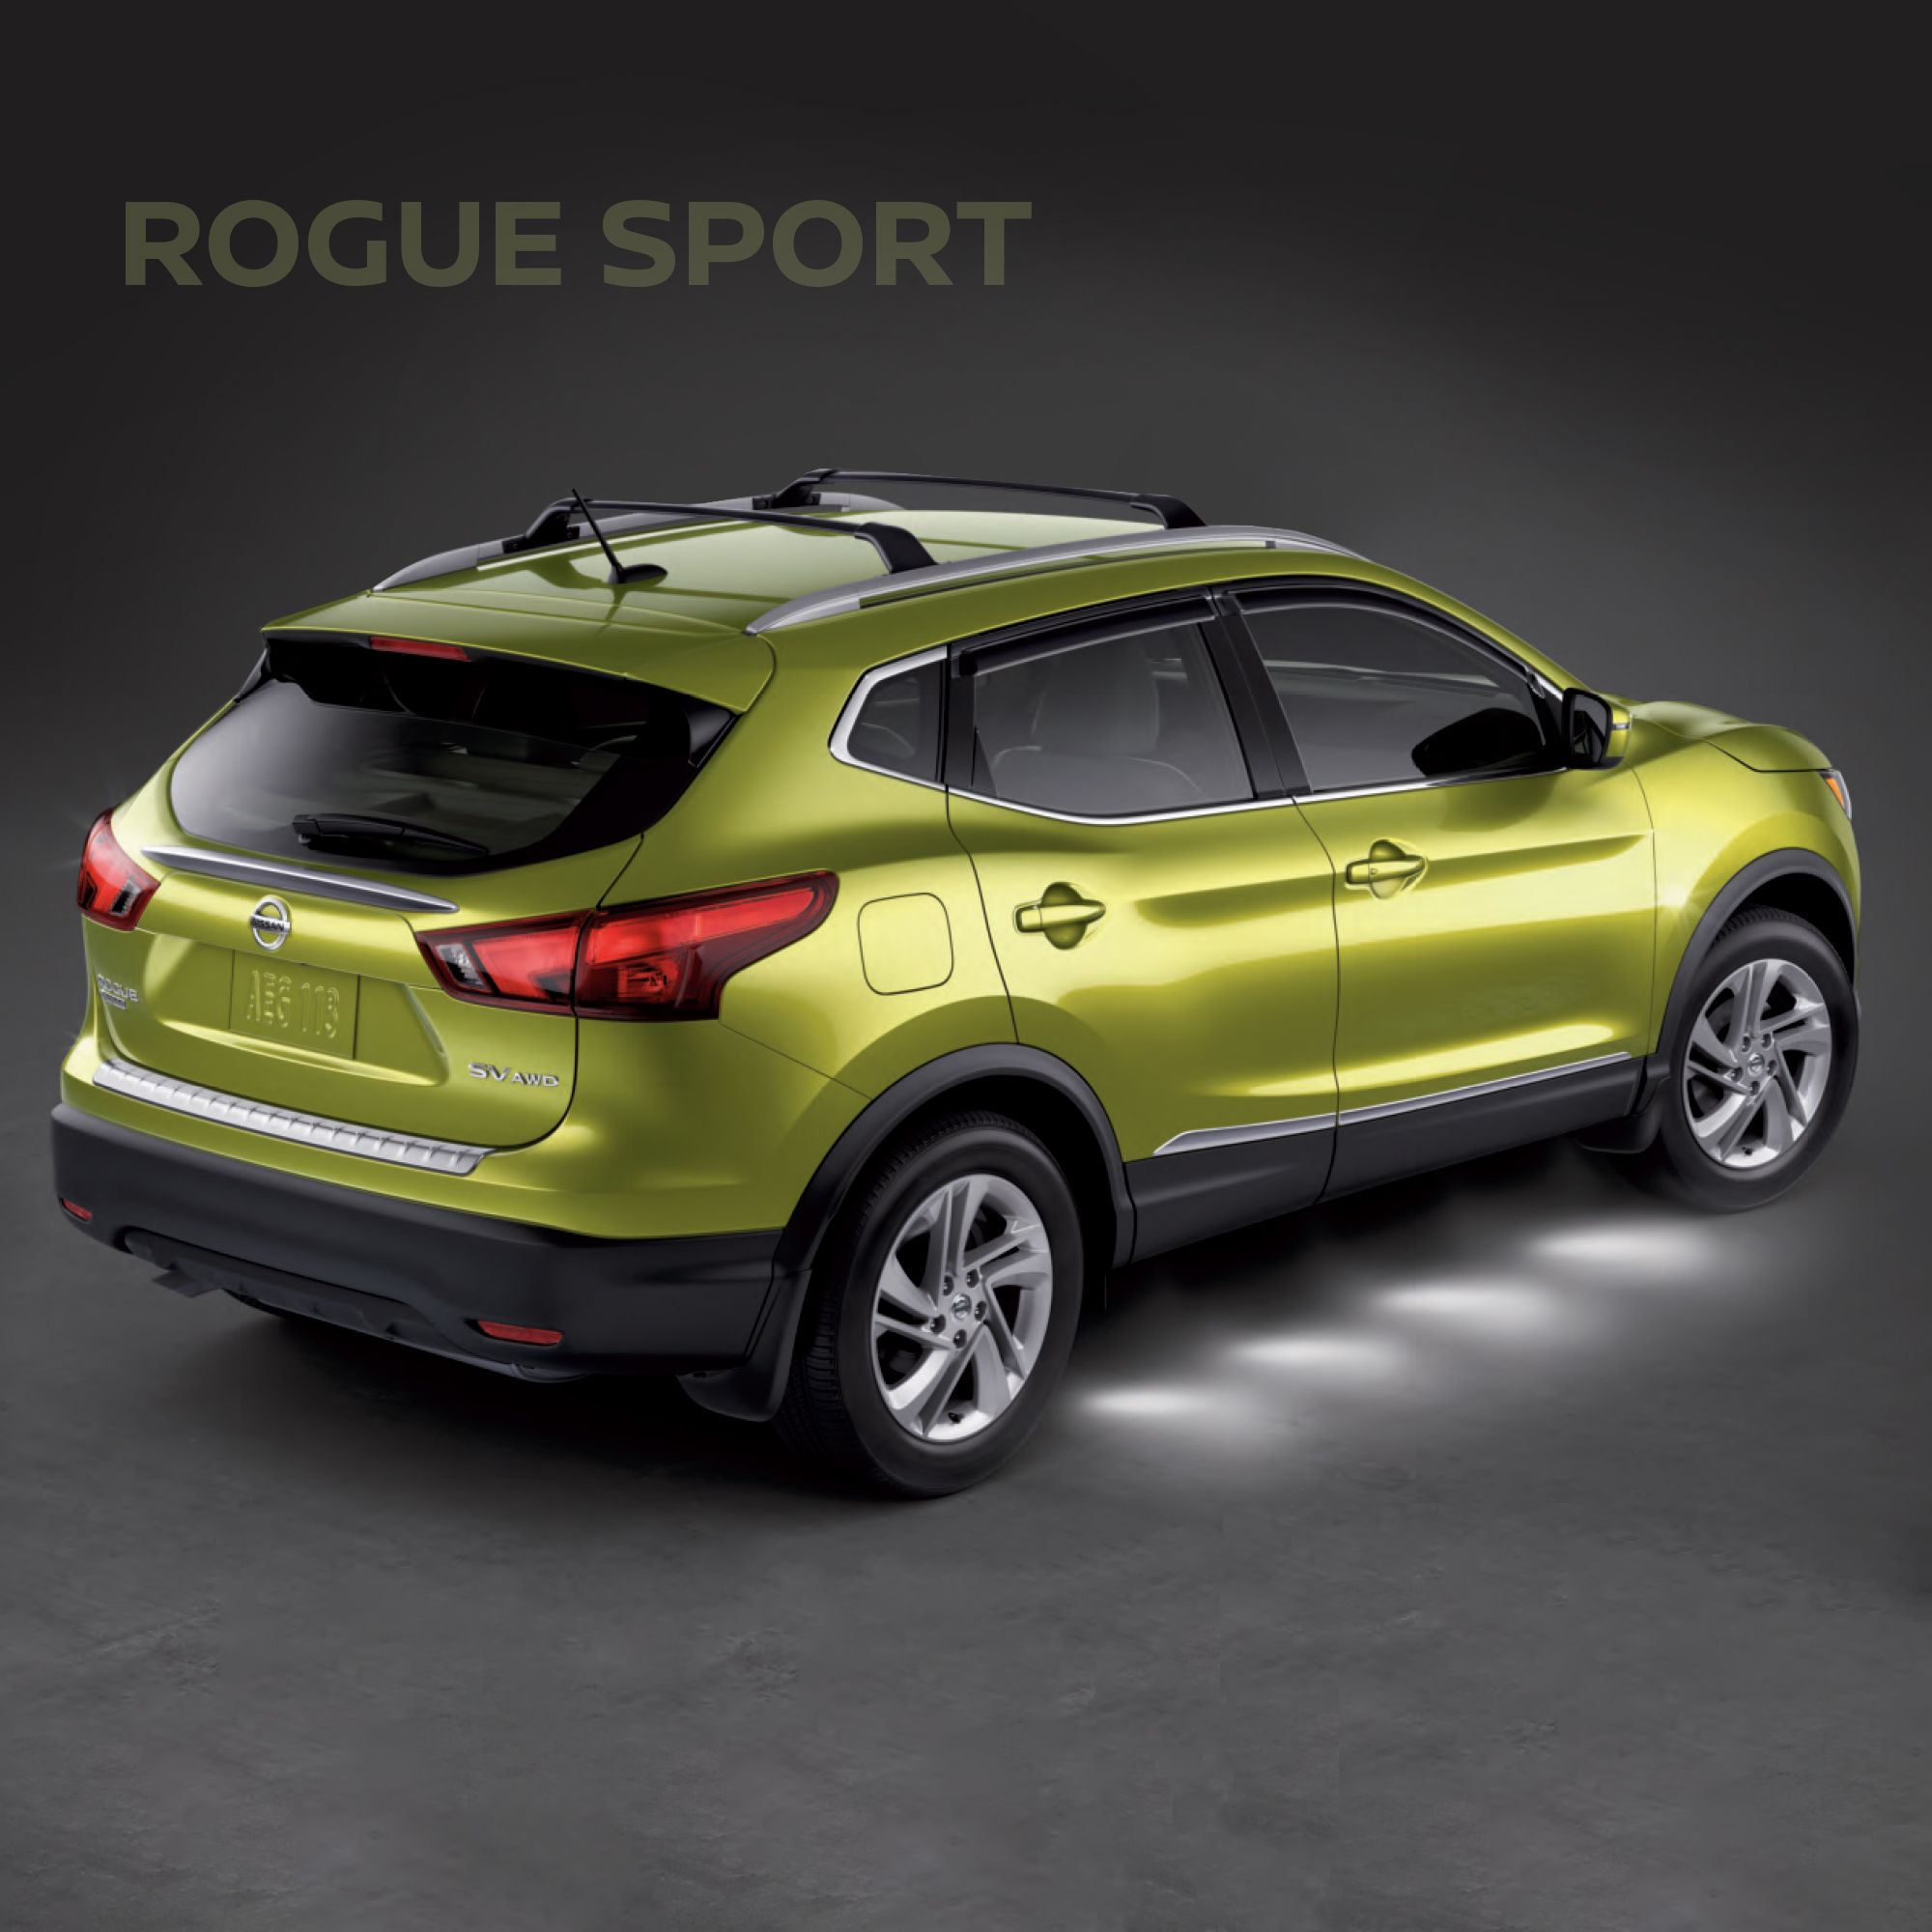 The new 2017 Nissan Rogue Sport features camera technology